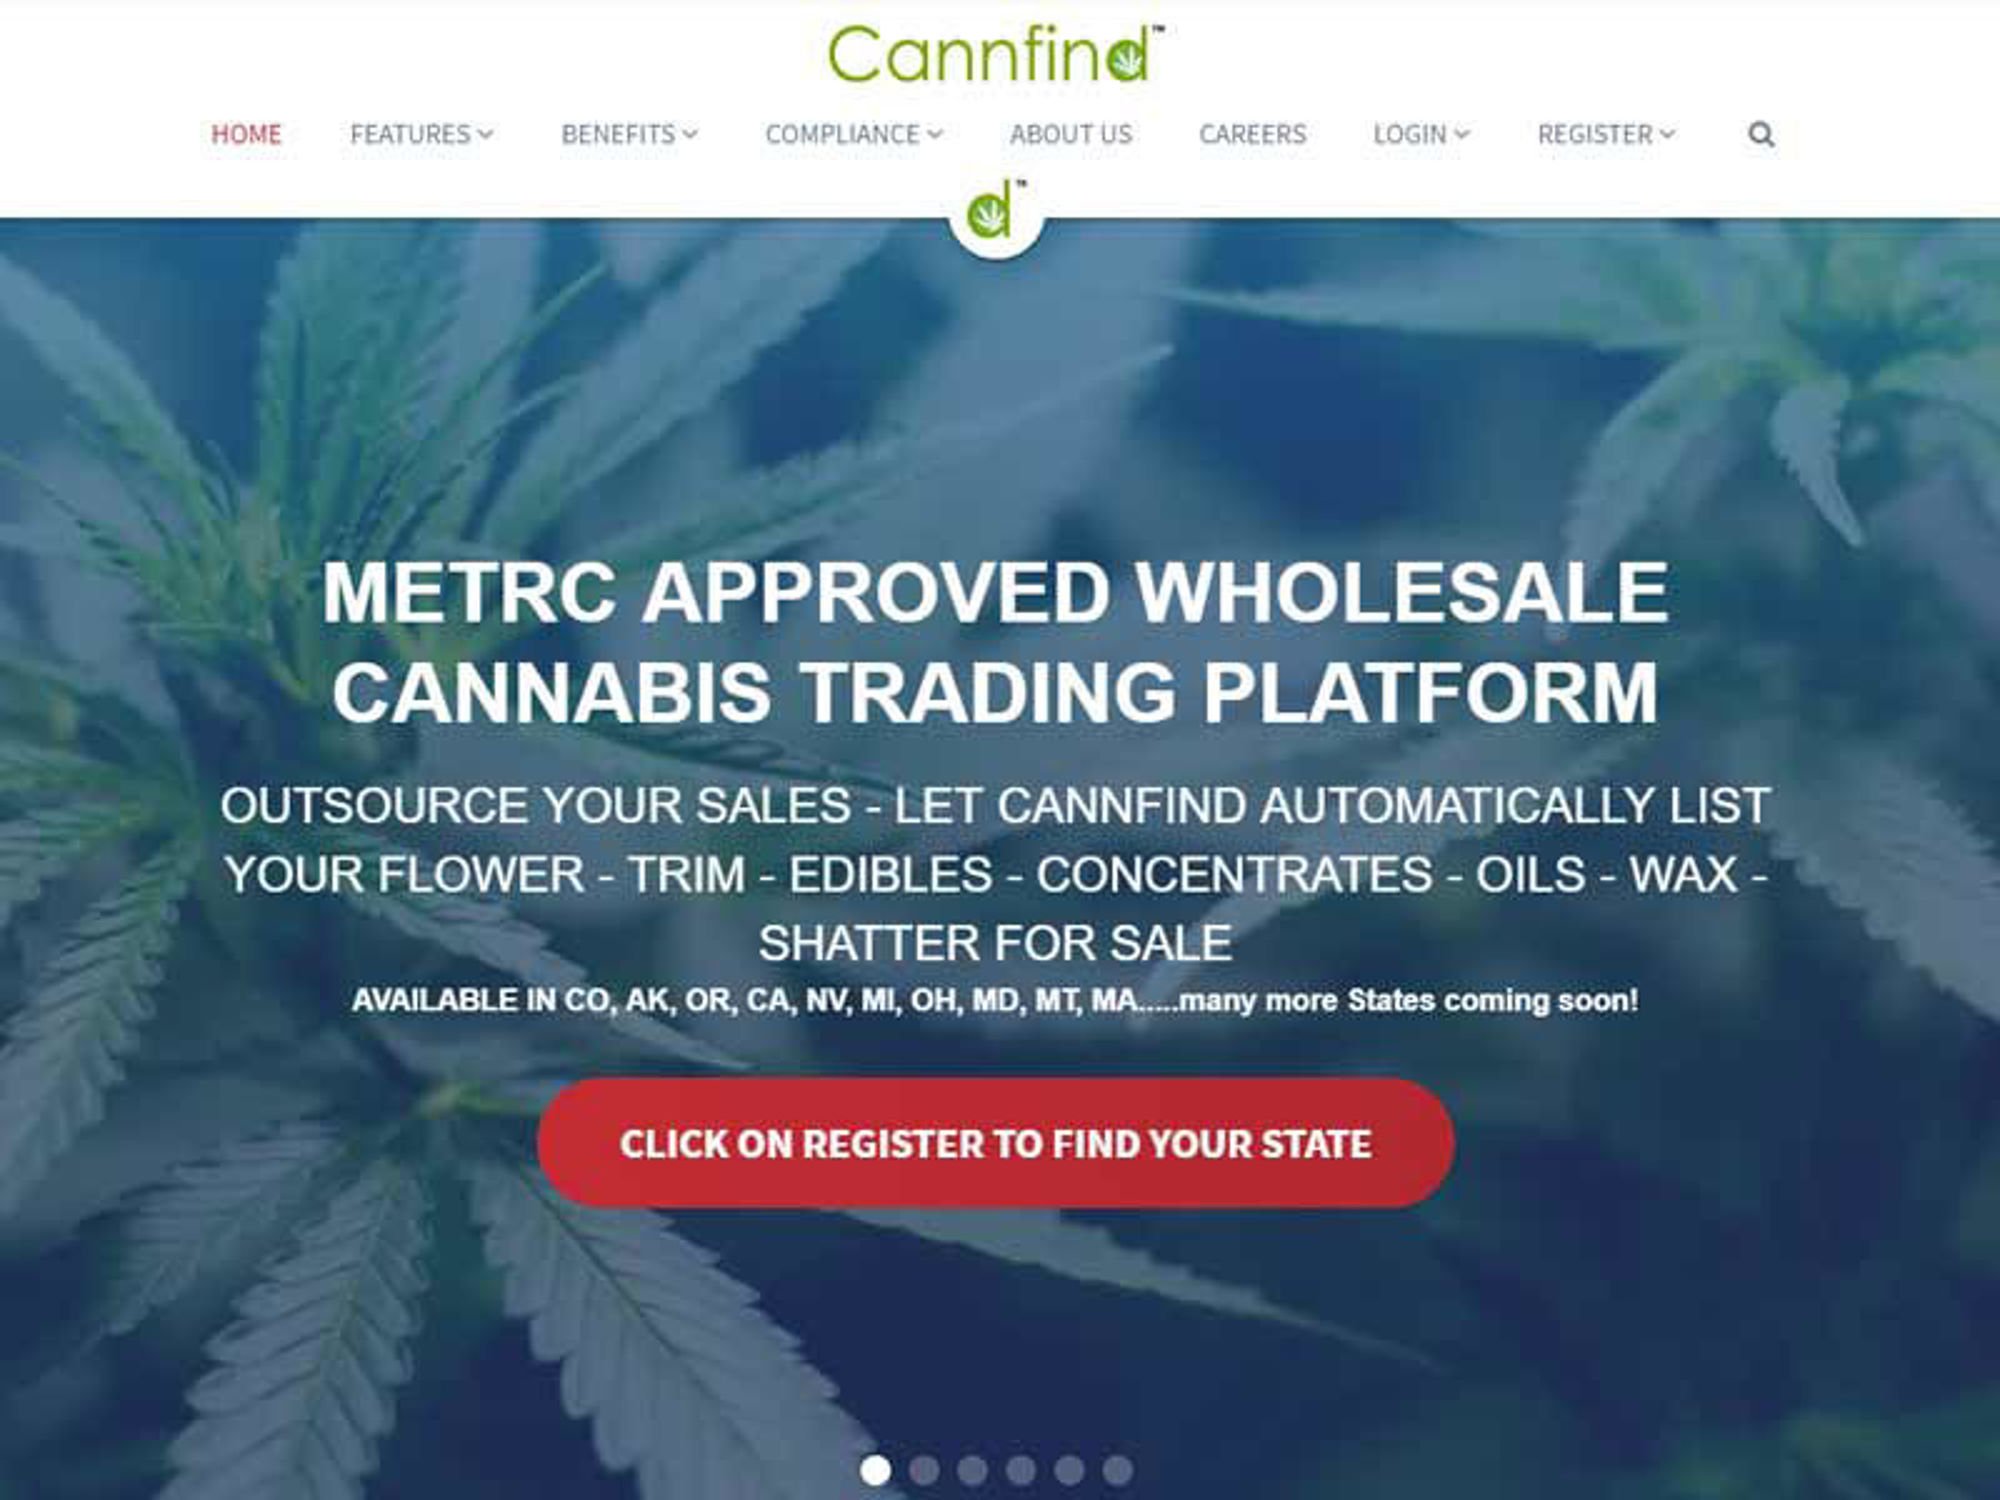 Cannfind UI